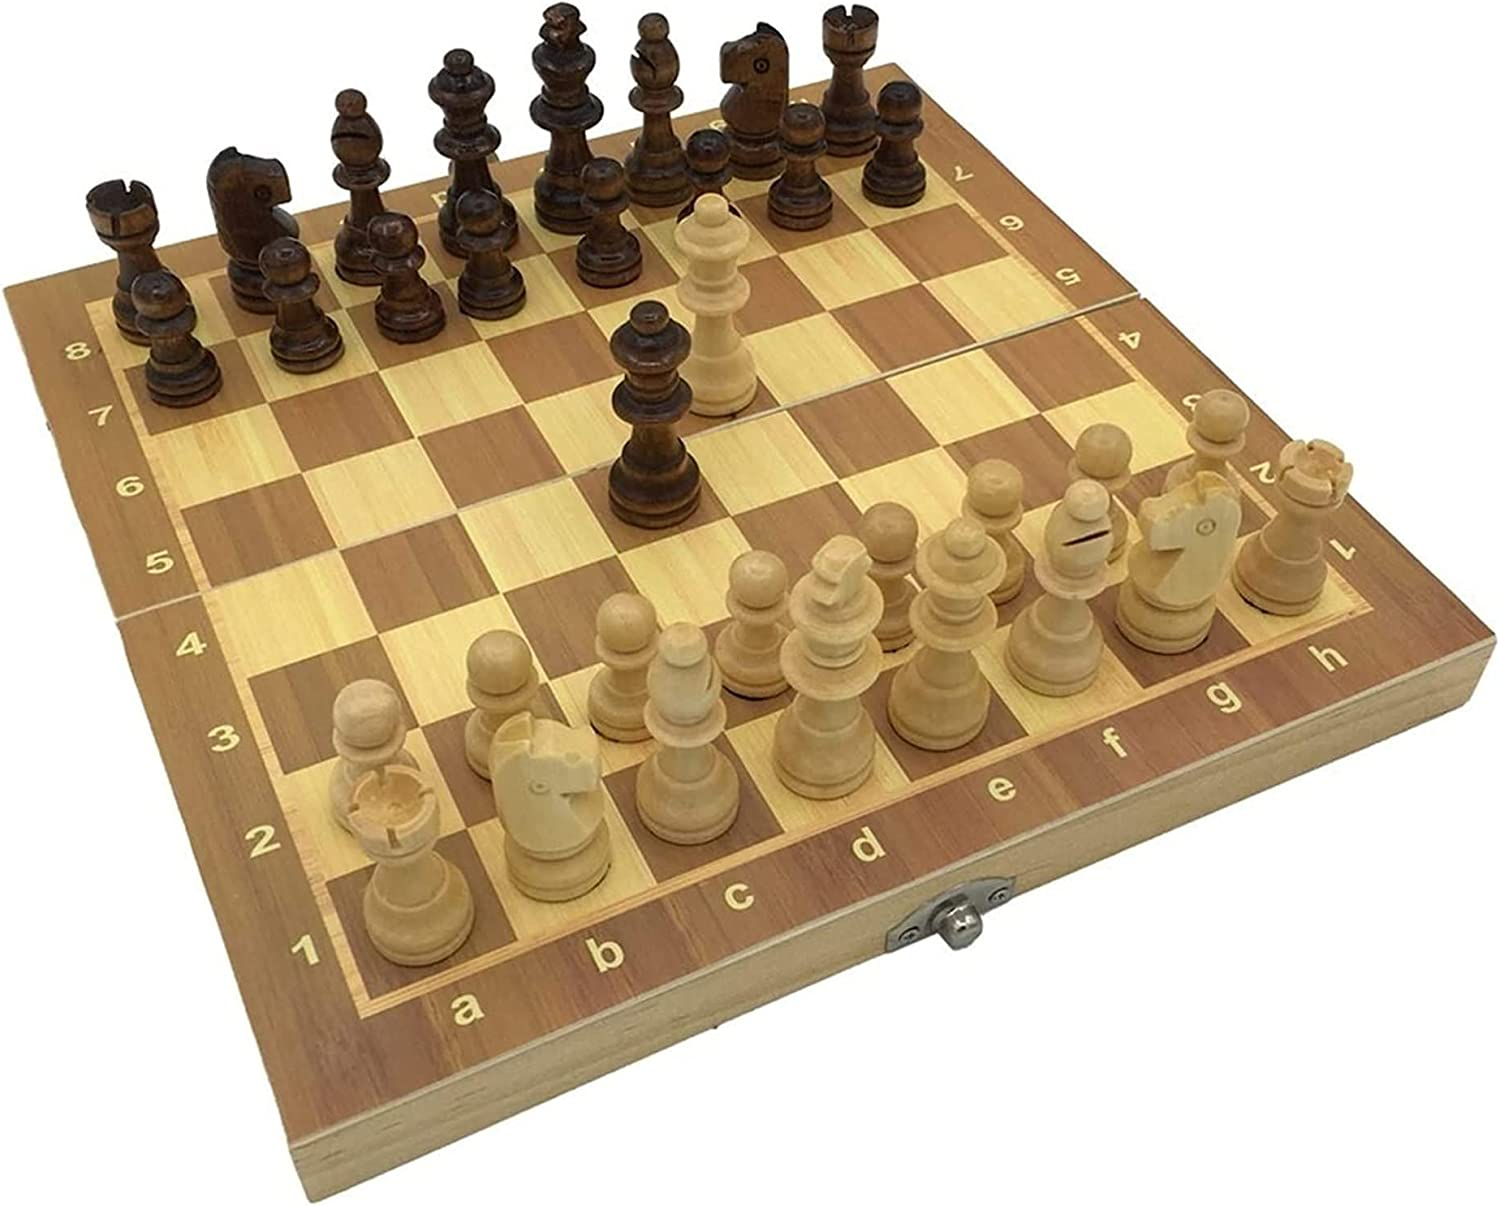 MTCWD Popularity Chess Set Folding Wooden Queen Board Size Max 80% OFF Extra Game